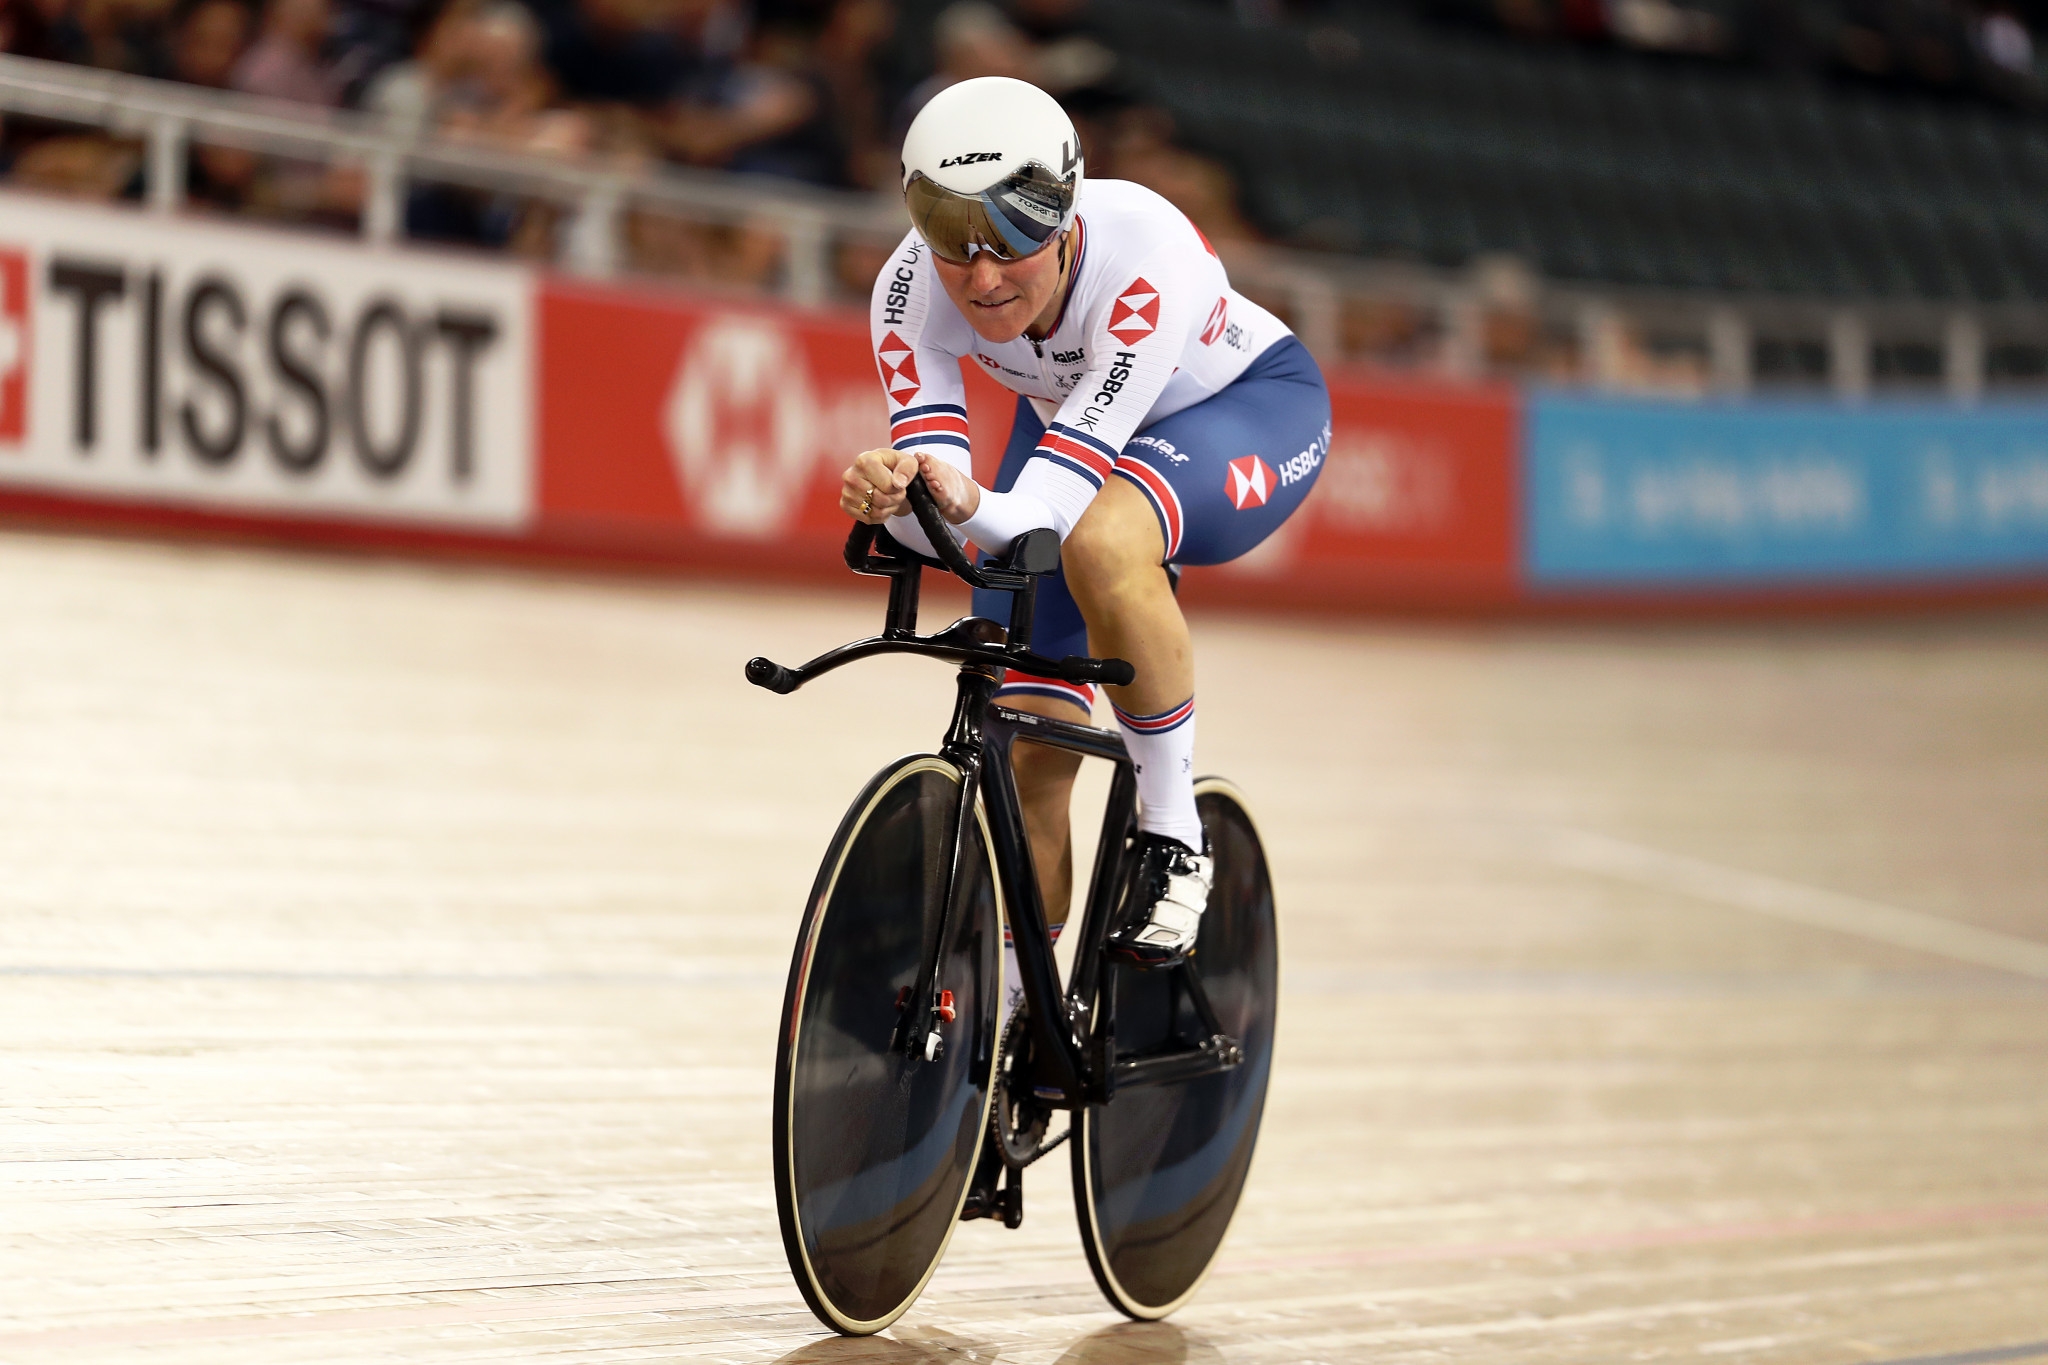 Storey seeking 14th title at Para Cycling Track World Championships in Apeldoorn